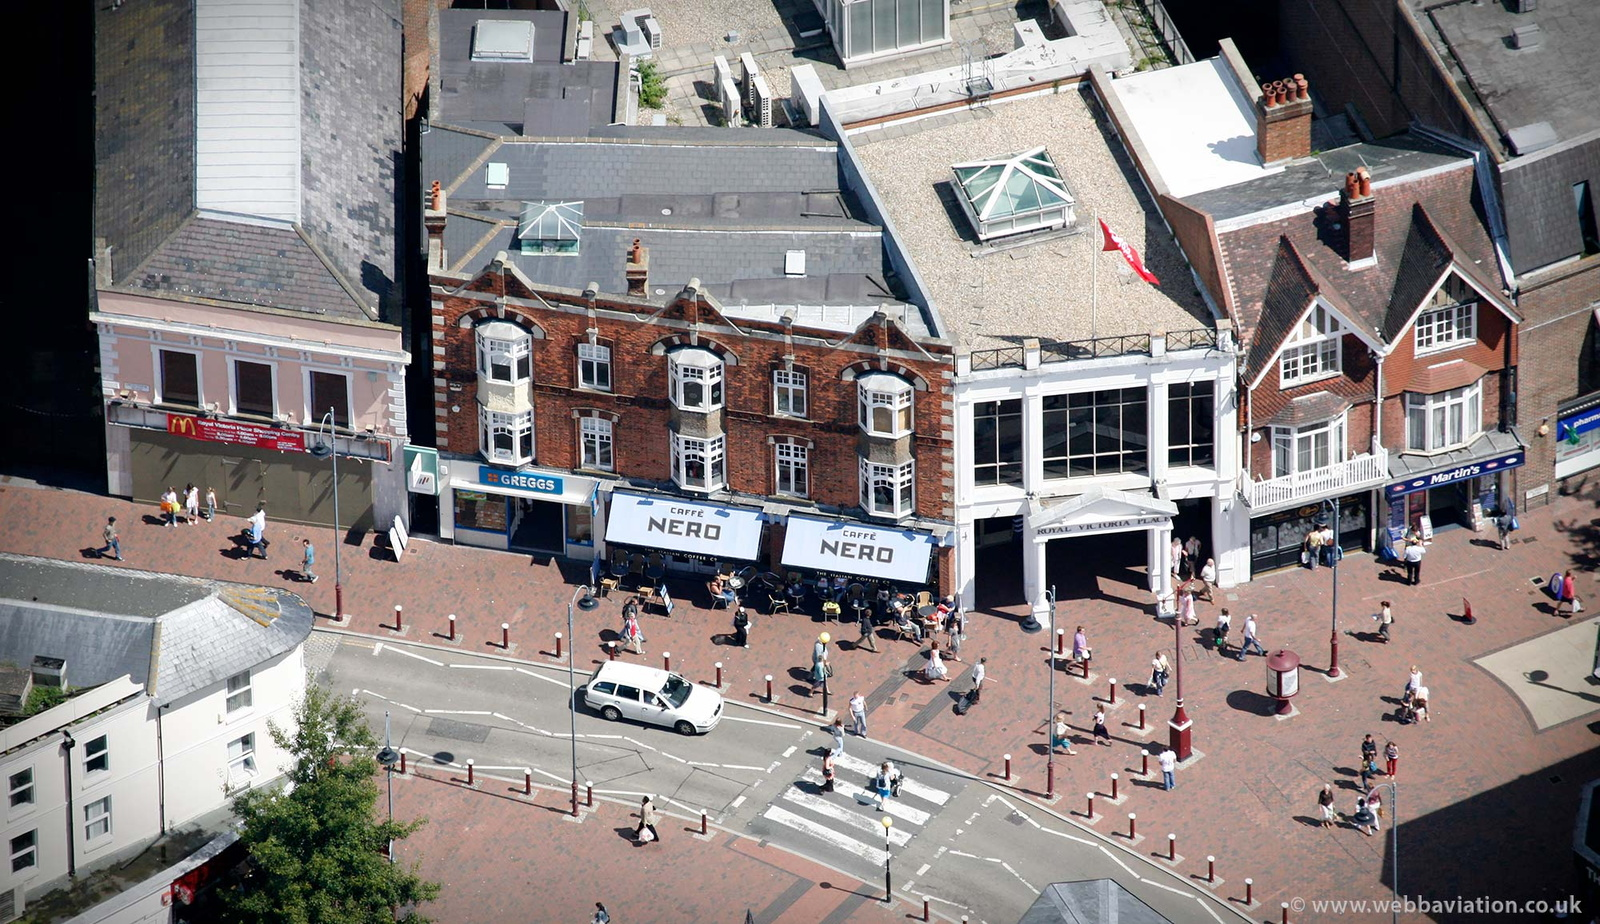 Cafe Nero in Tunbridge Wells  from the air